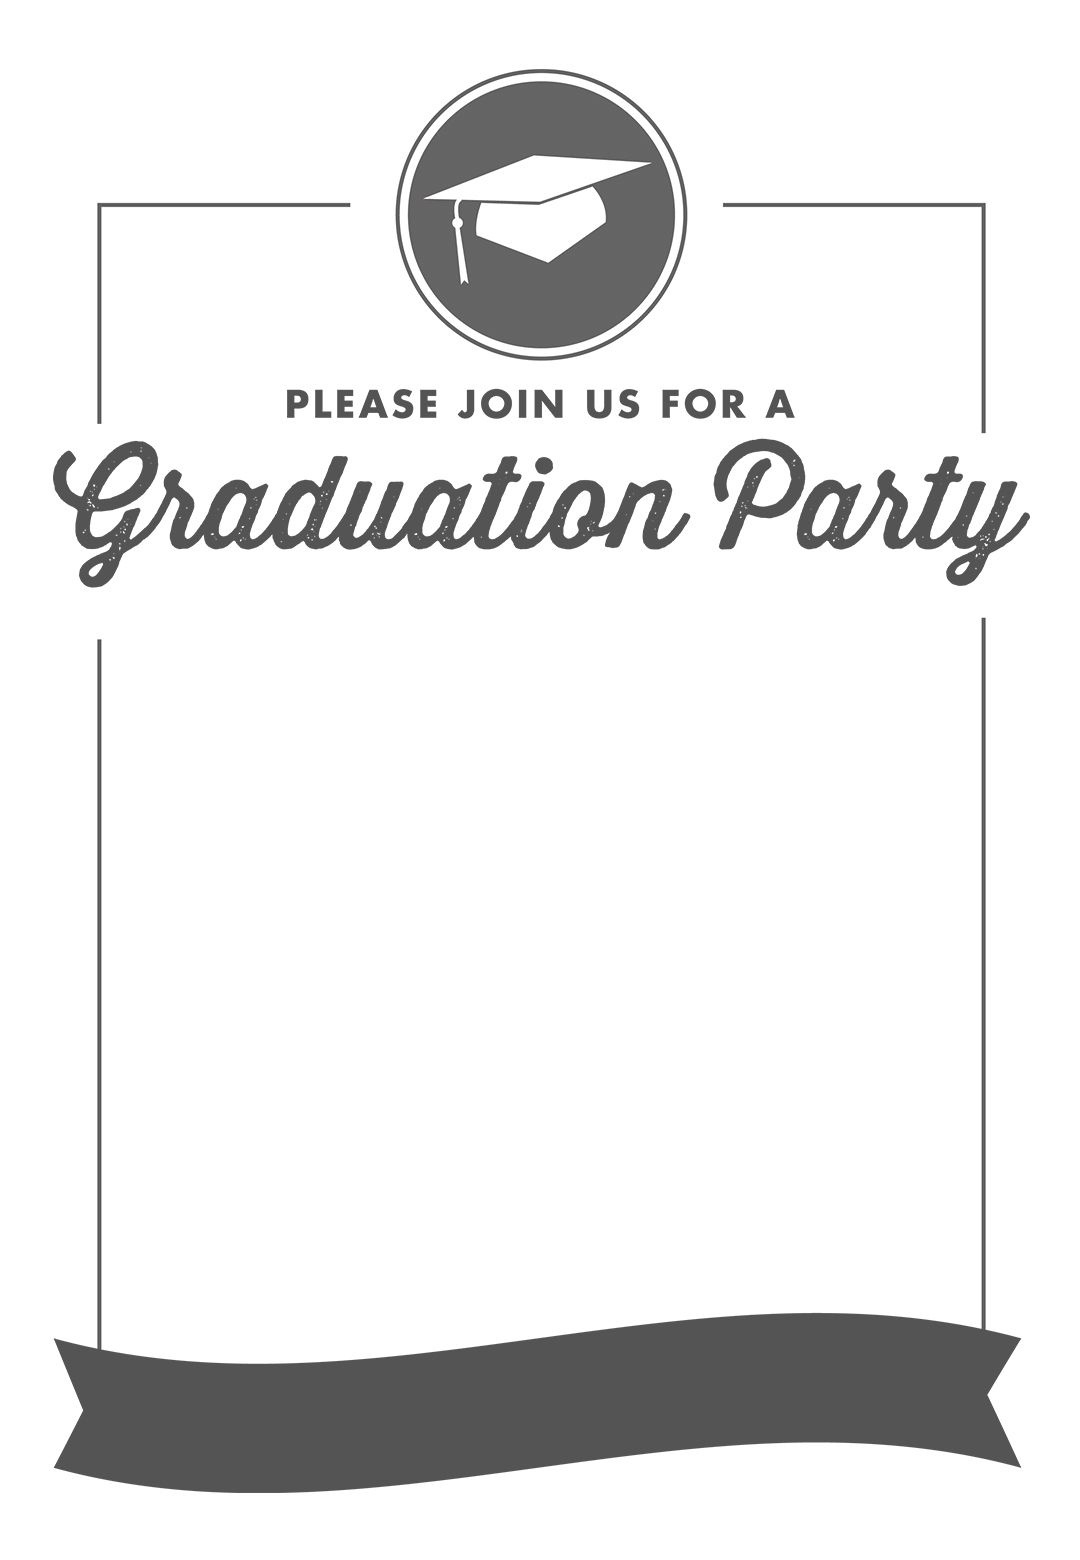 Free Printable Graduation Party Invitation Template | Greetings - Free Printable Graduation Party Invitations